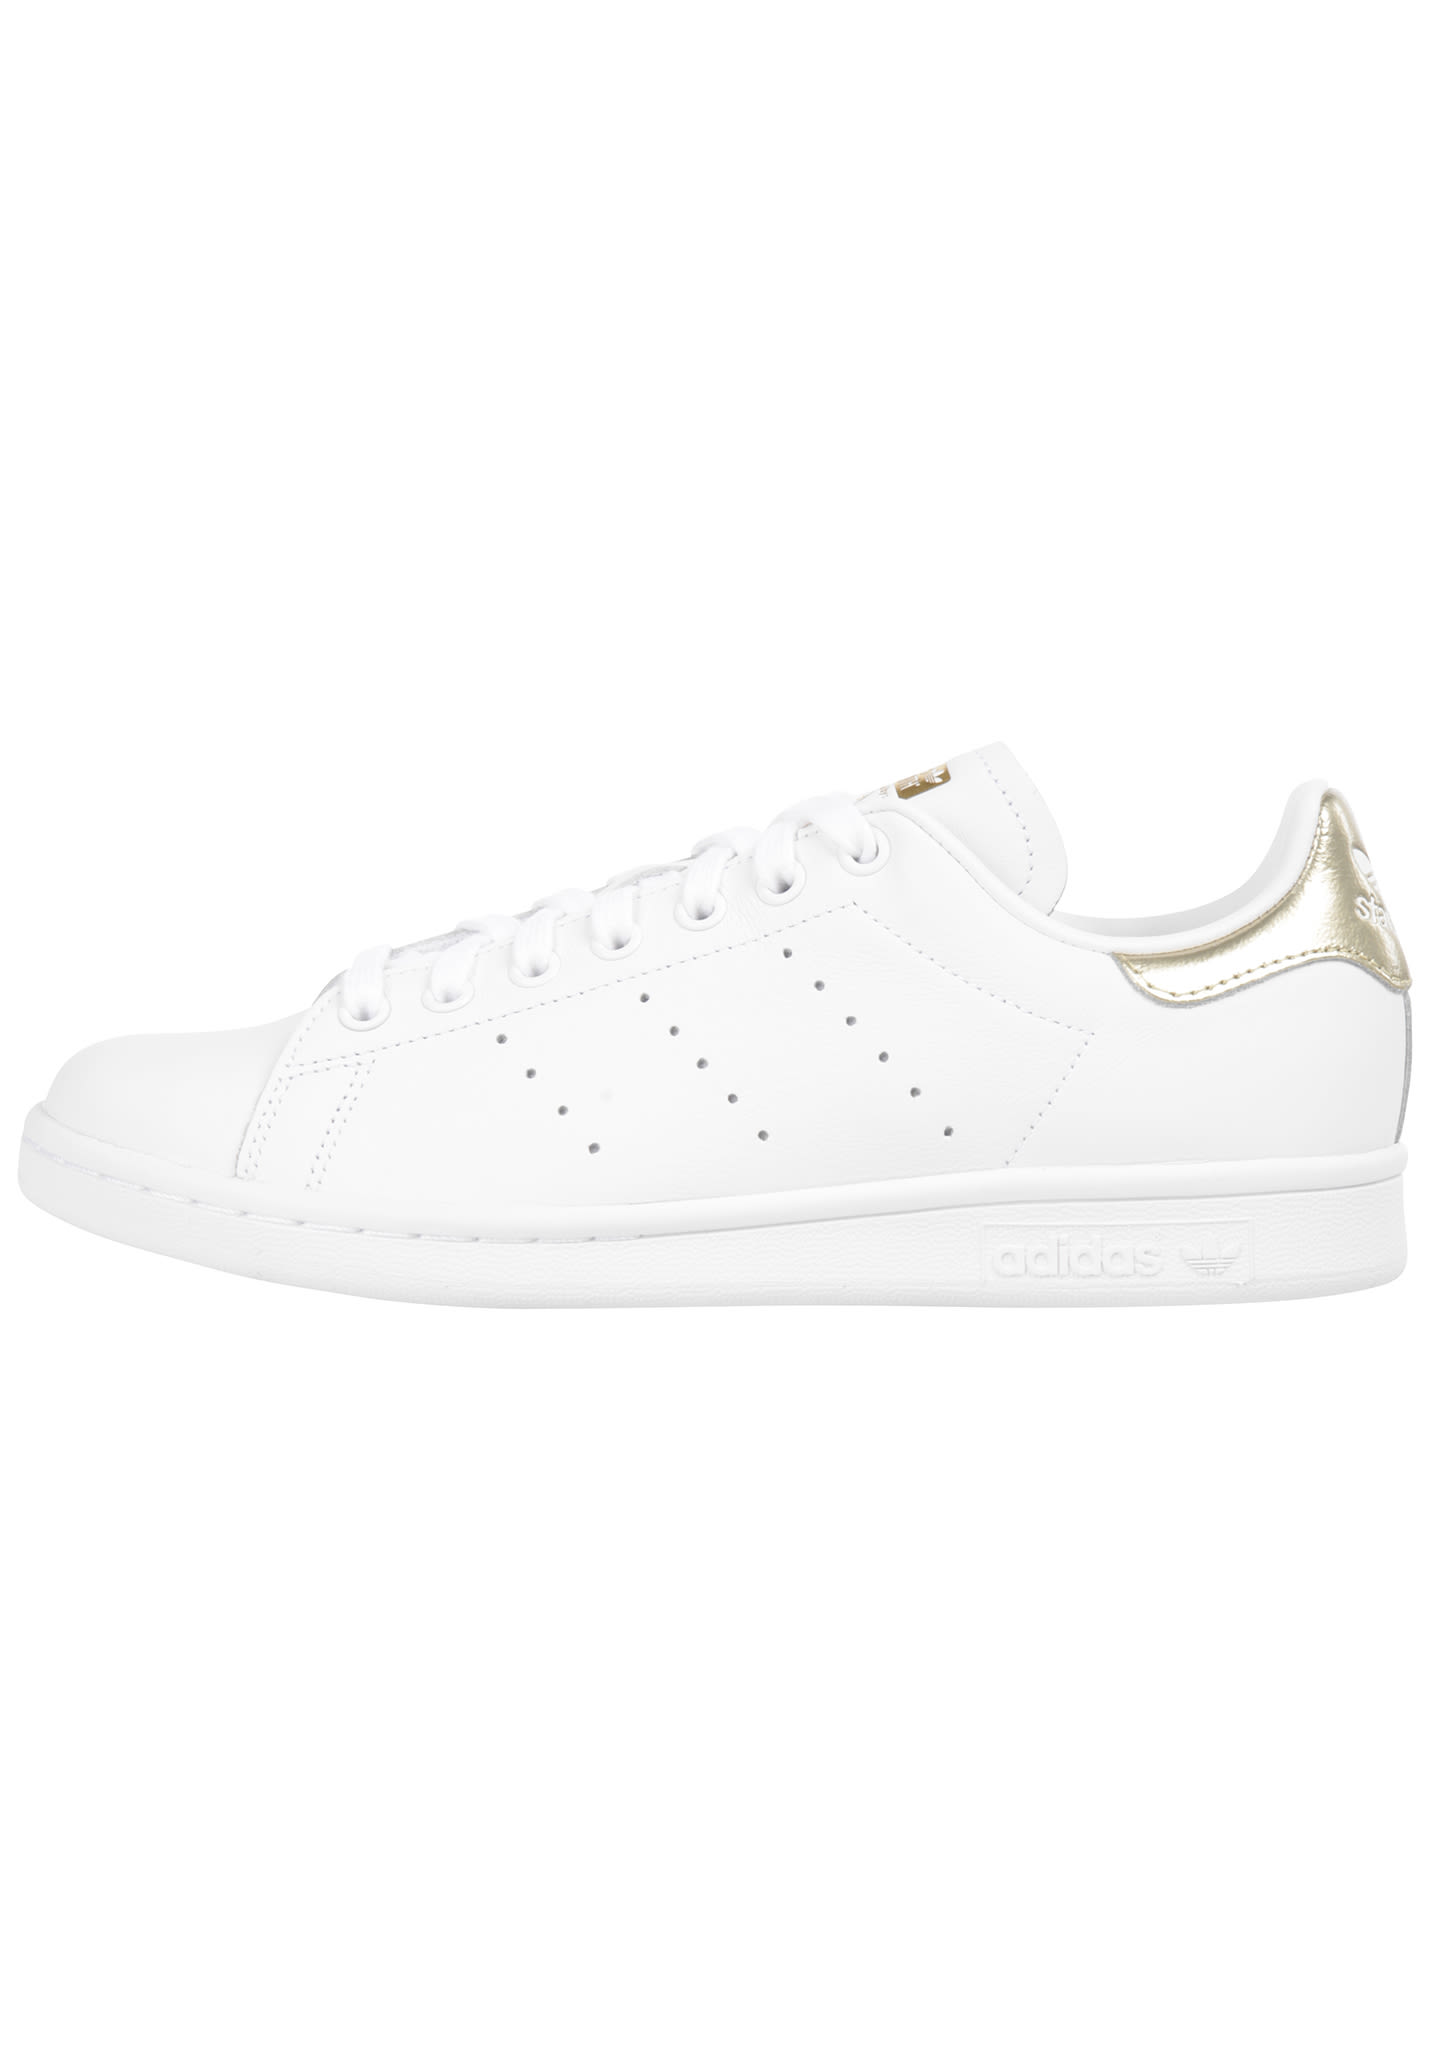 3ae76fca4472d4 adidas Originals Stan Smith - Sneaker für Damen - Weiß - Planet Sports